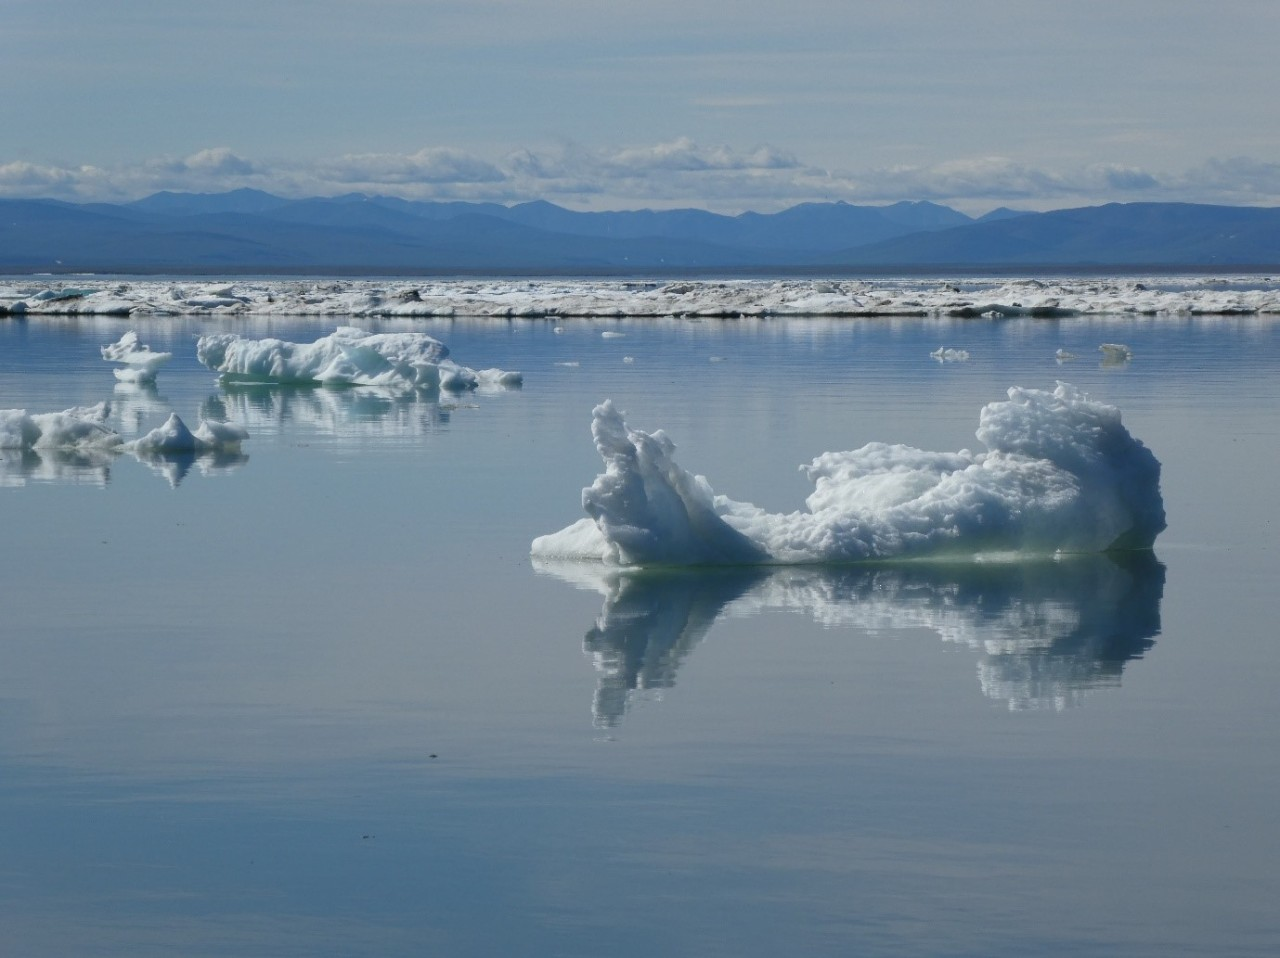 Facing climate change in the CanadianArctic